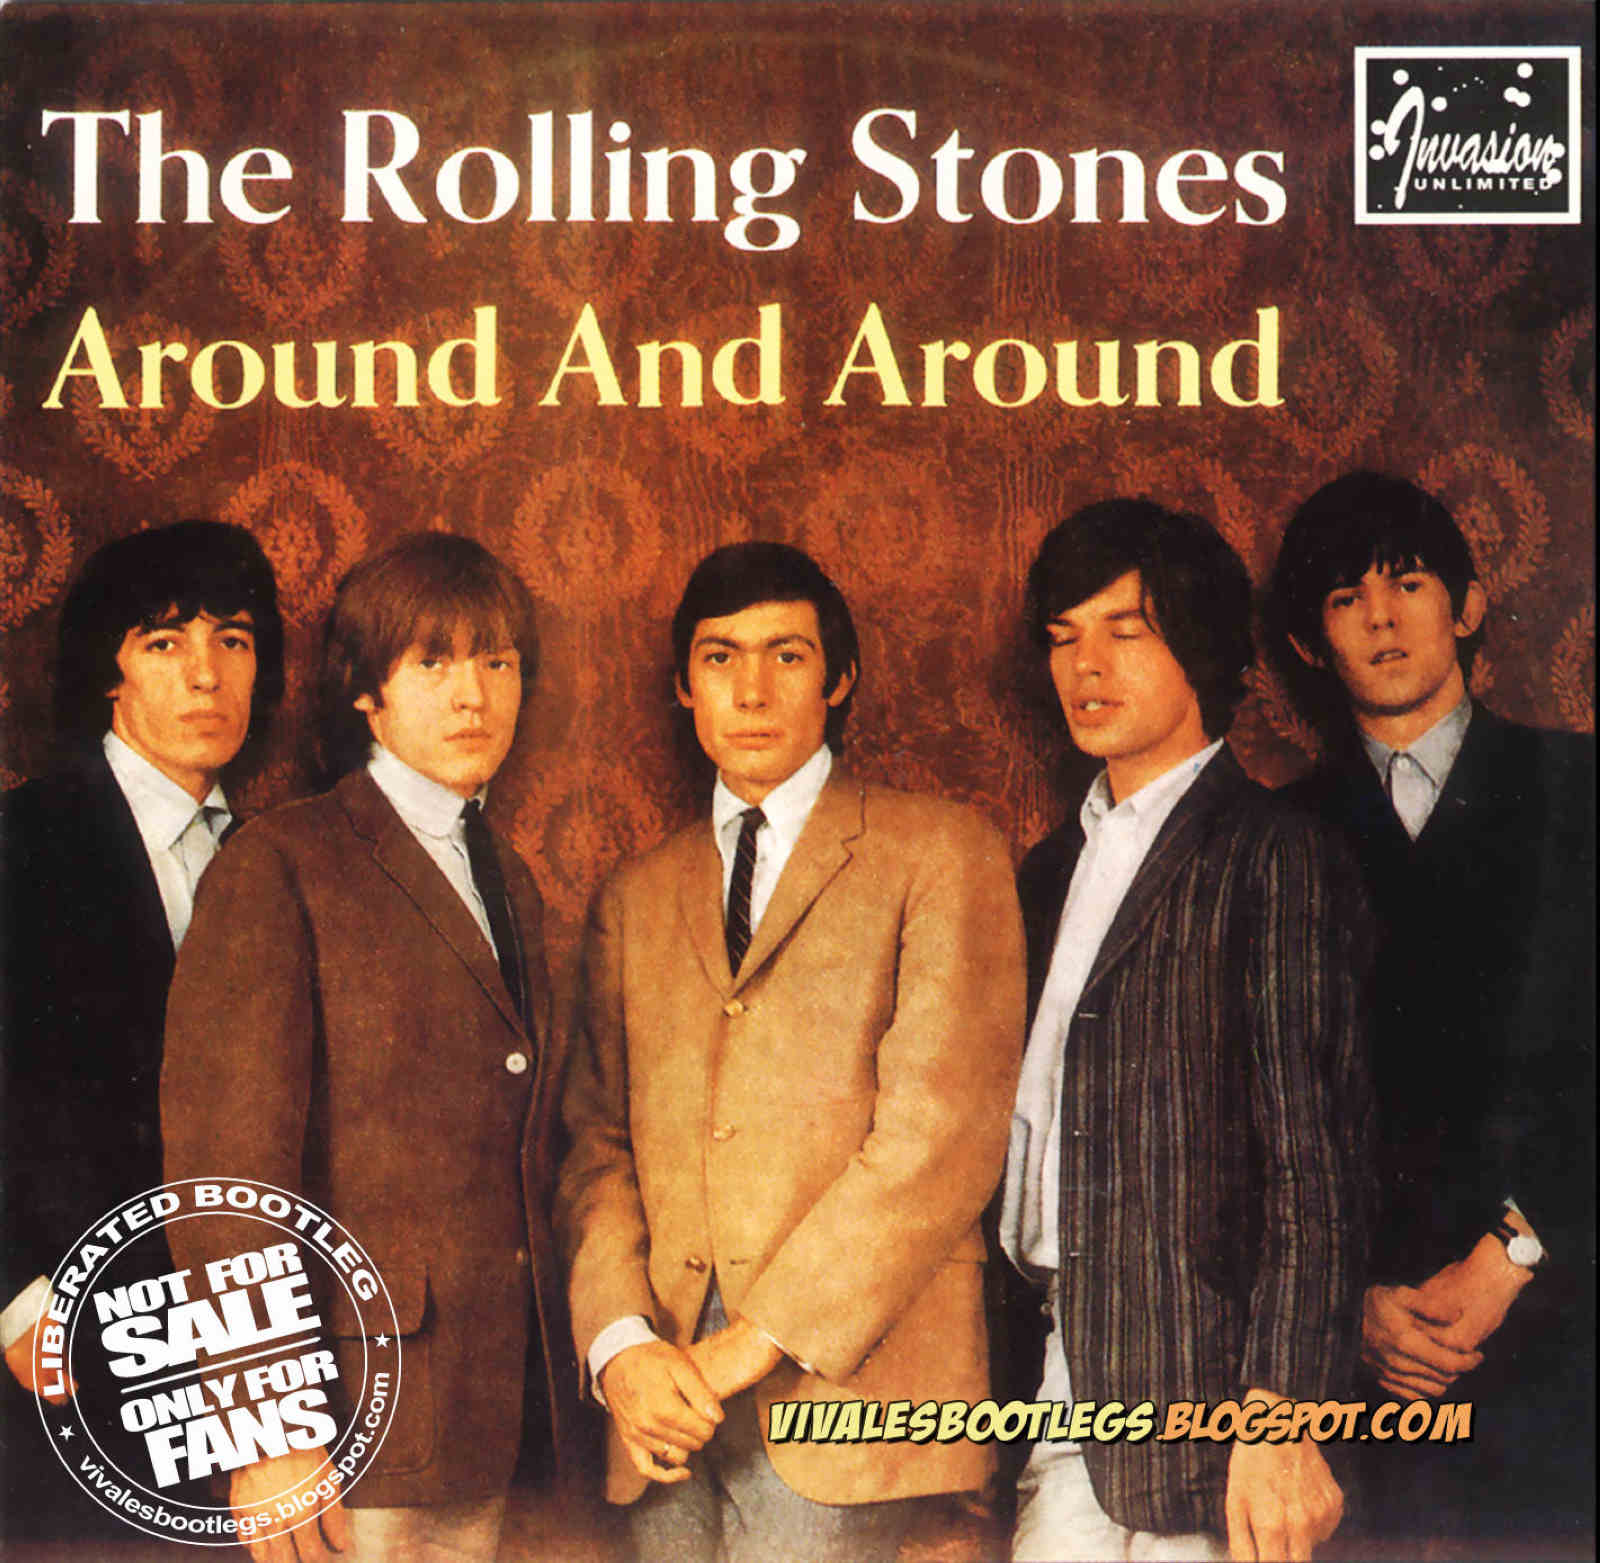 Viva Les Bootlegs: The Rolling Stones: Around And Around